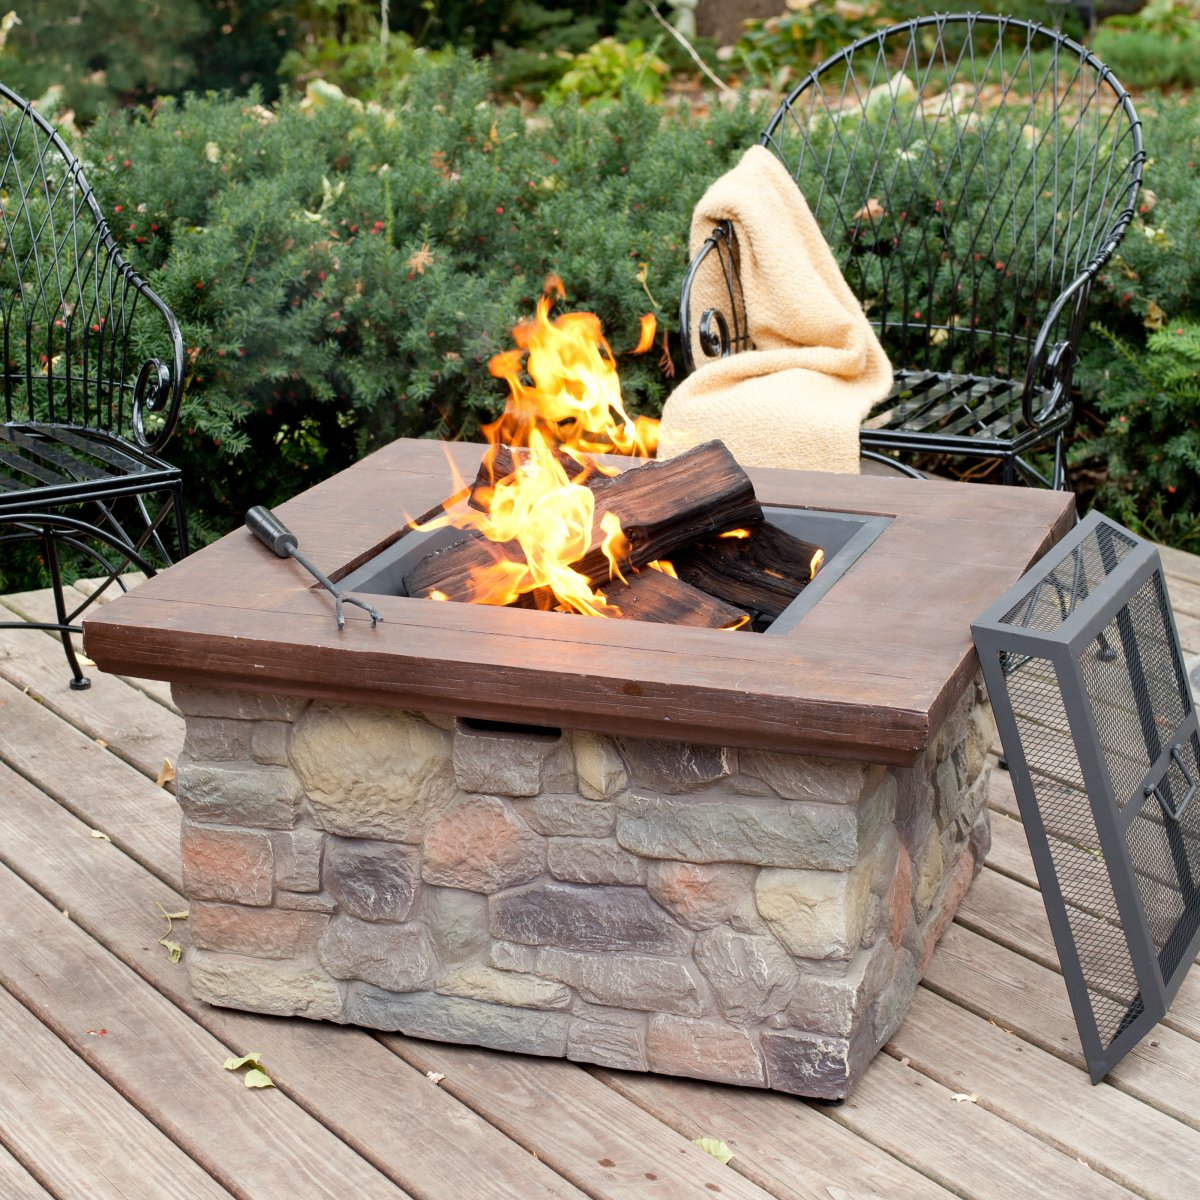 Wood fire pit on wood deck - Fire Pit Table On Wood Deck